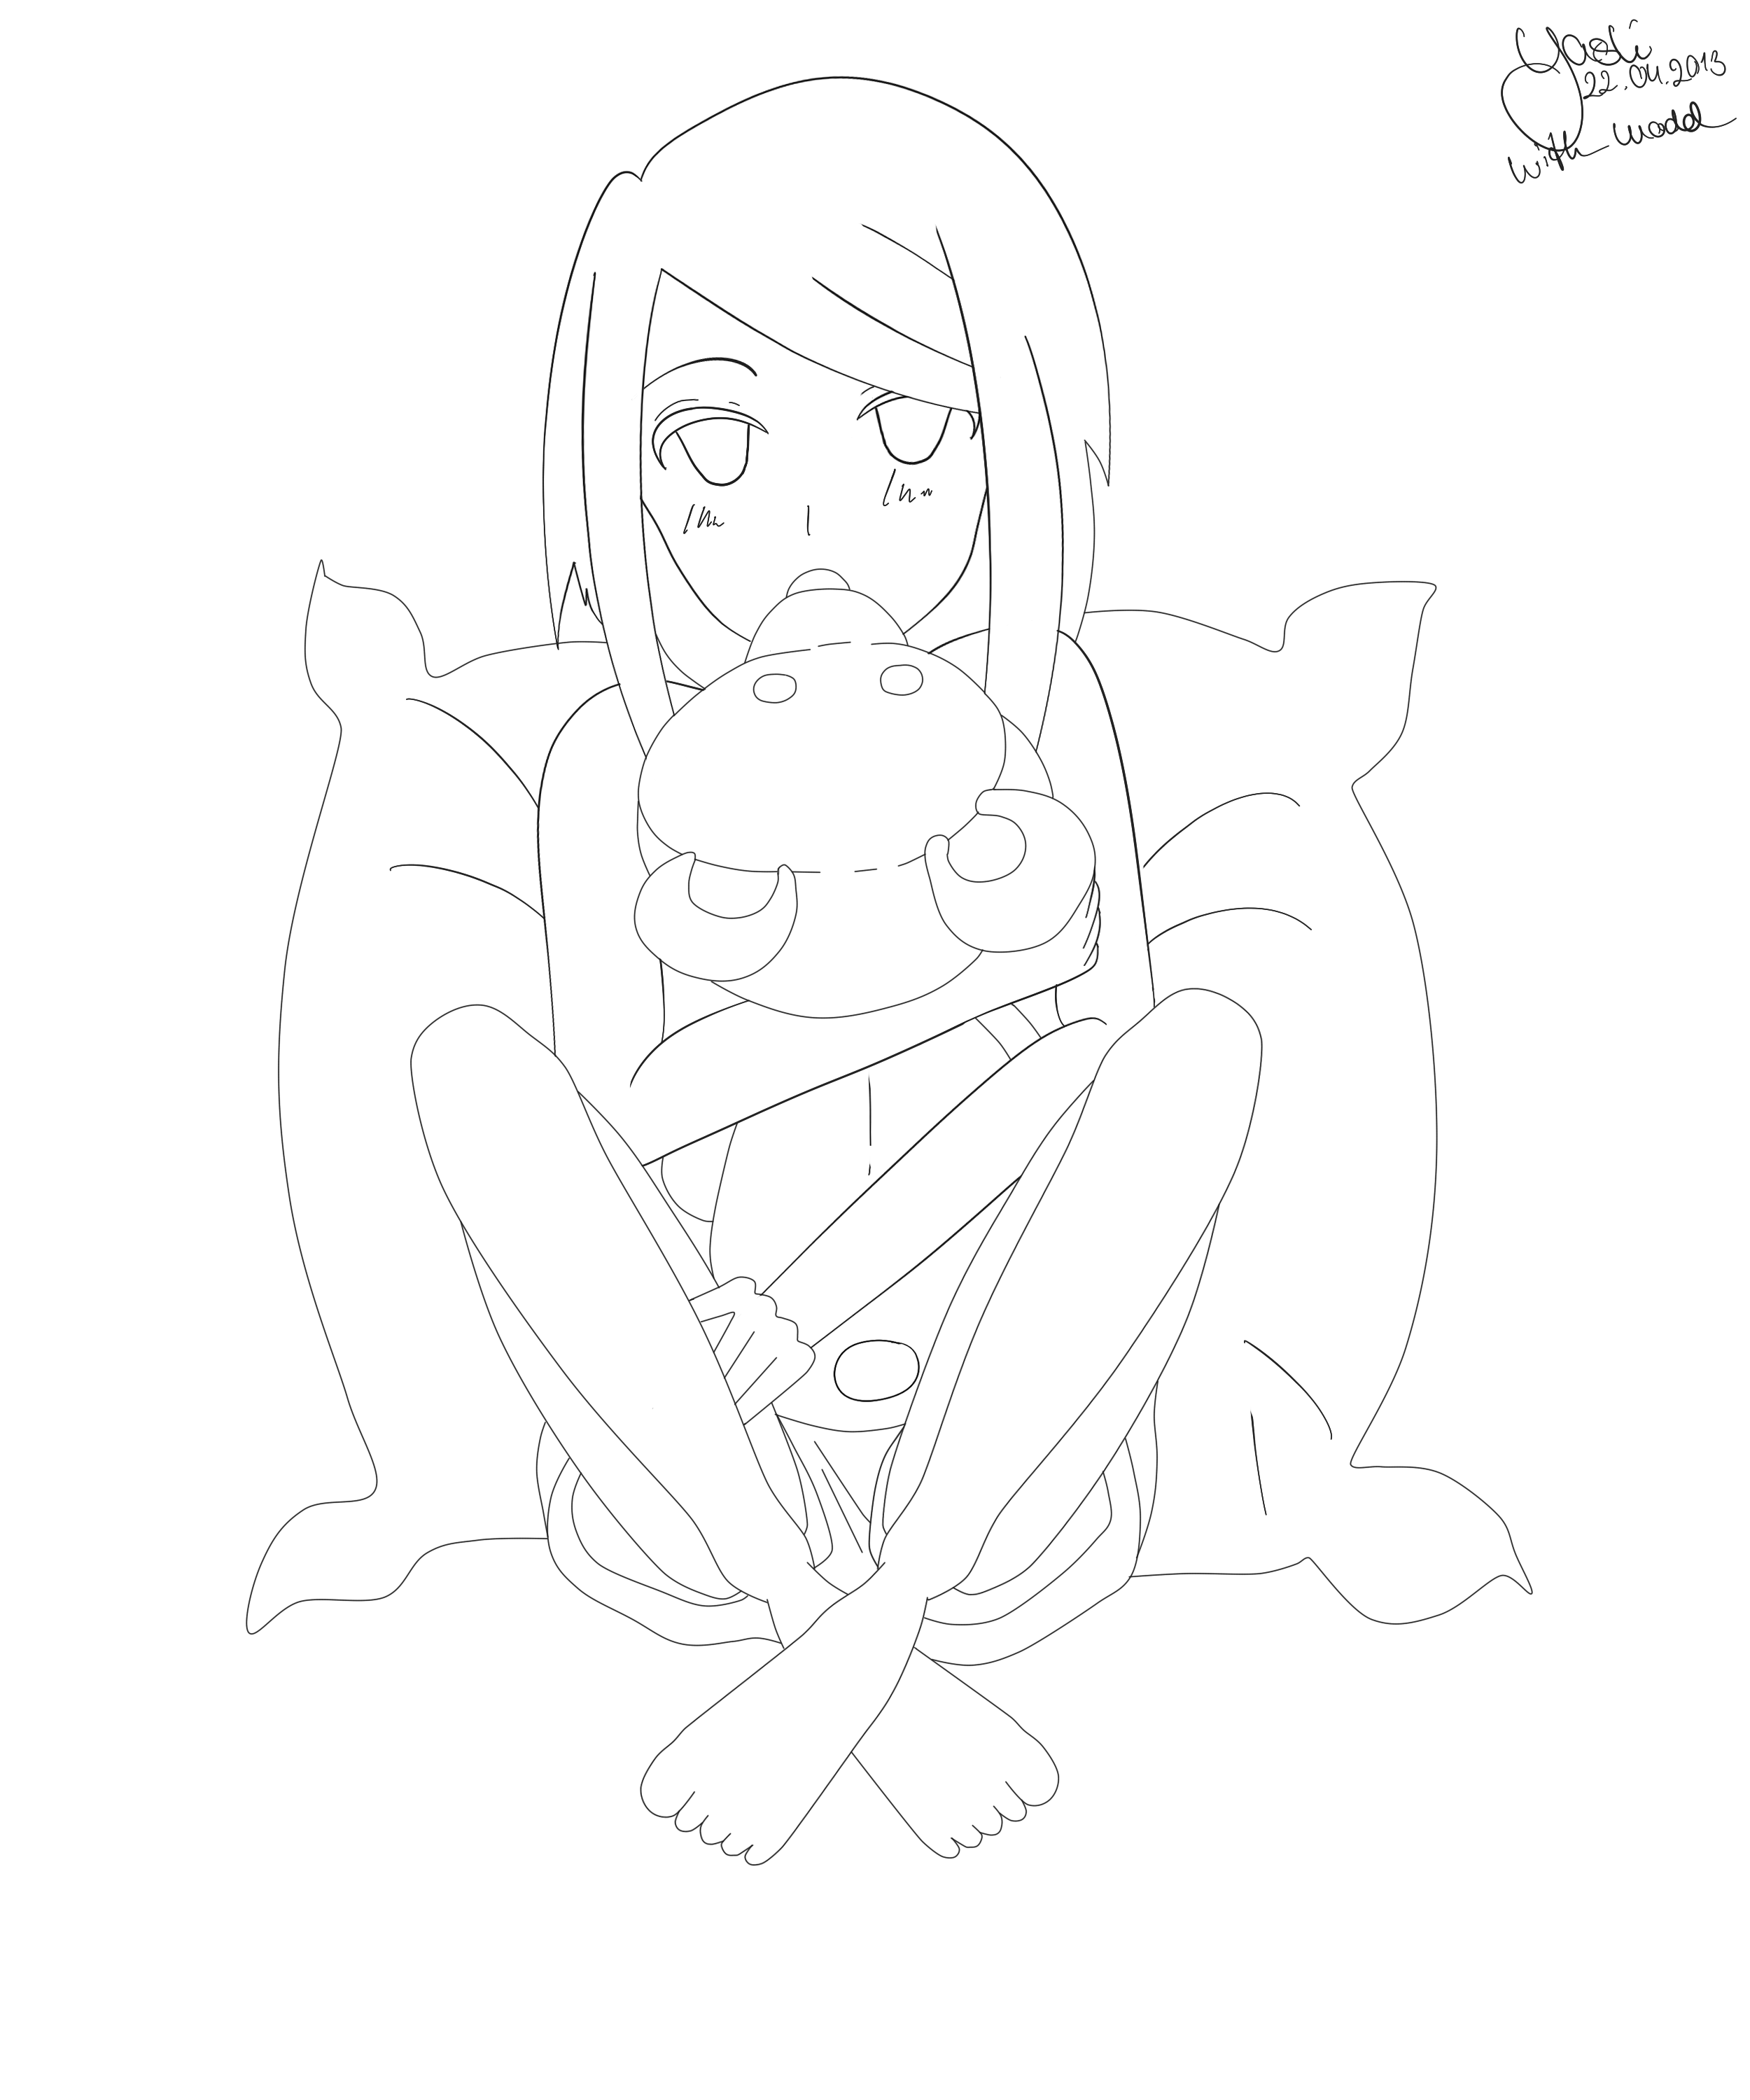 Anime outline png. Outlines girl with a